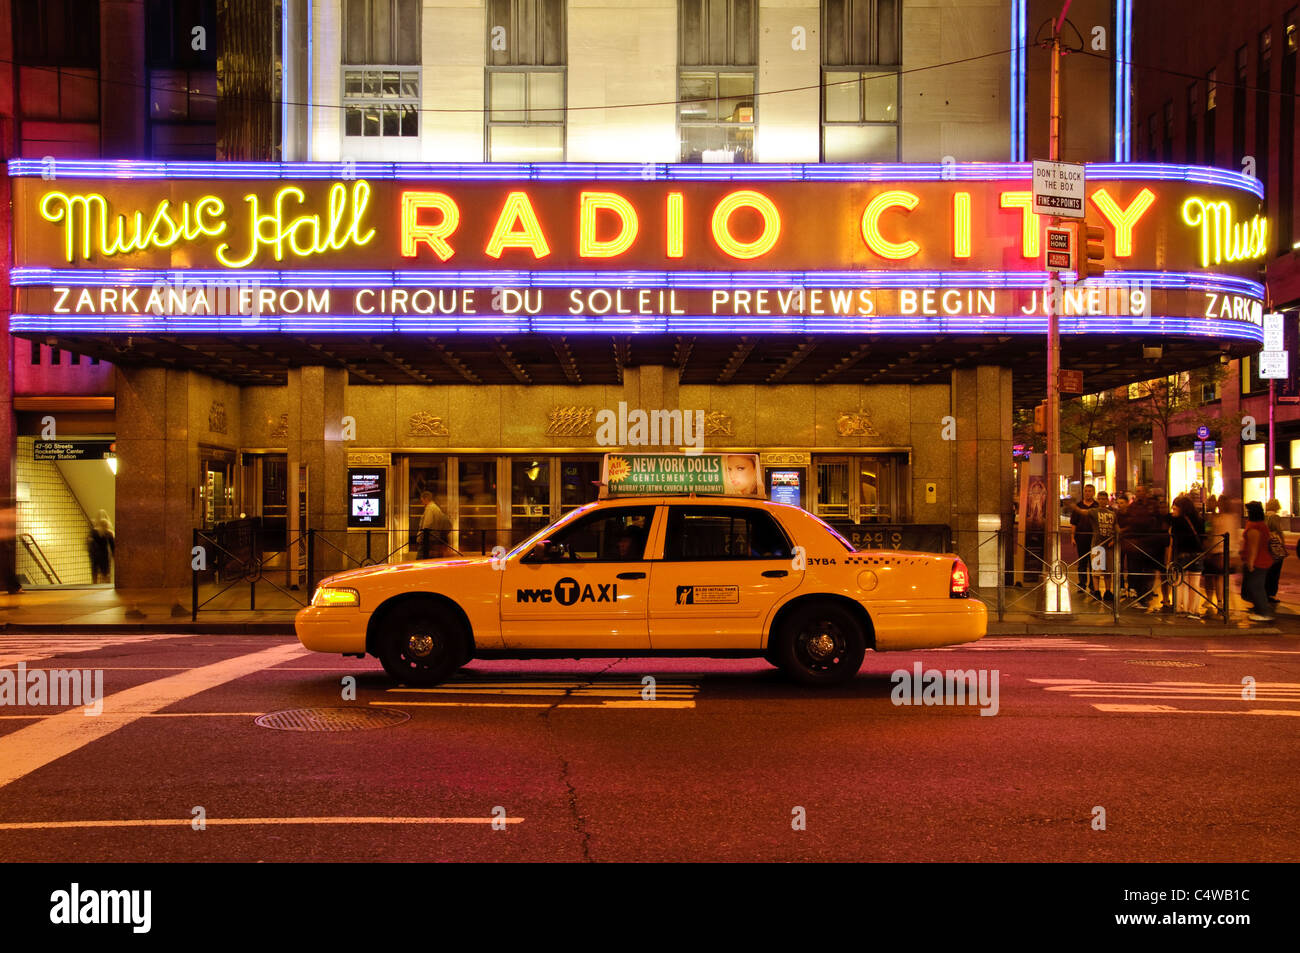 Radio City Musical Hall, Avenue of the Americas, New York City, 2011 Stock Photo